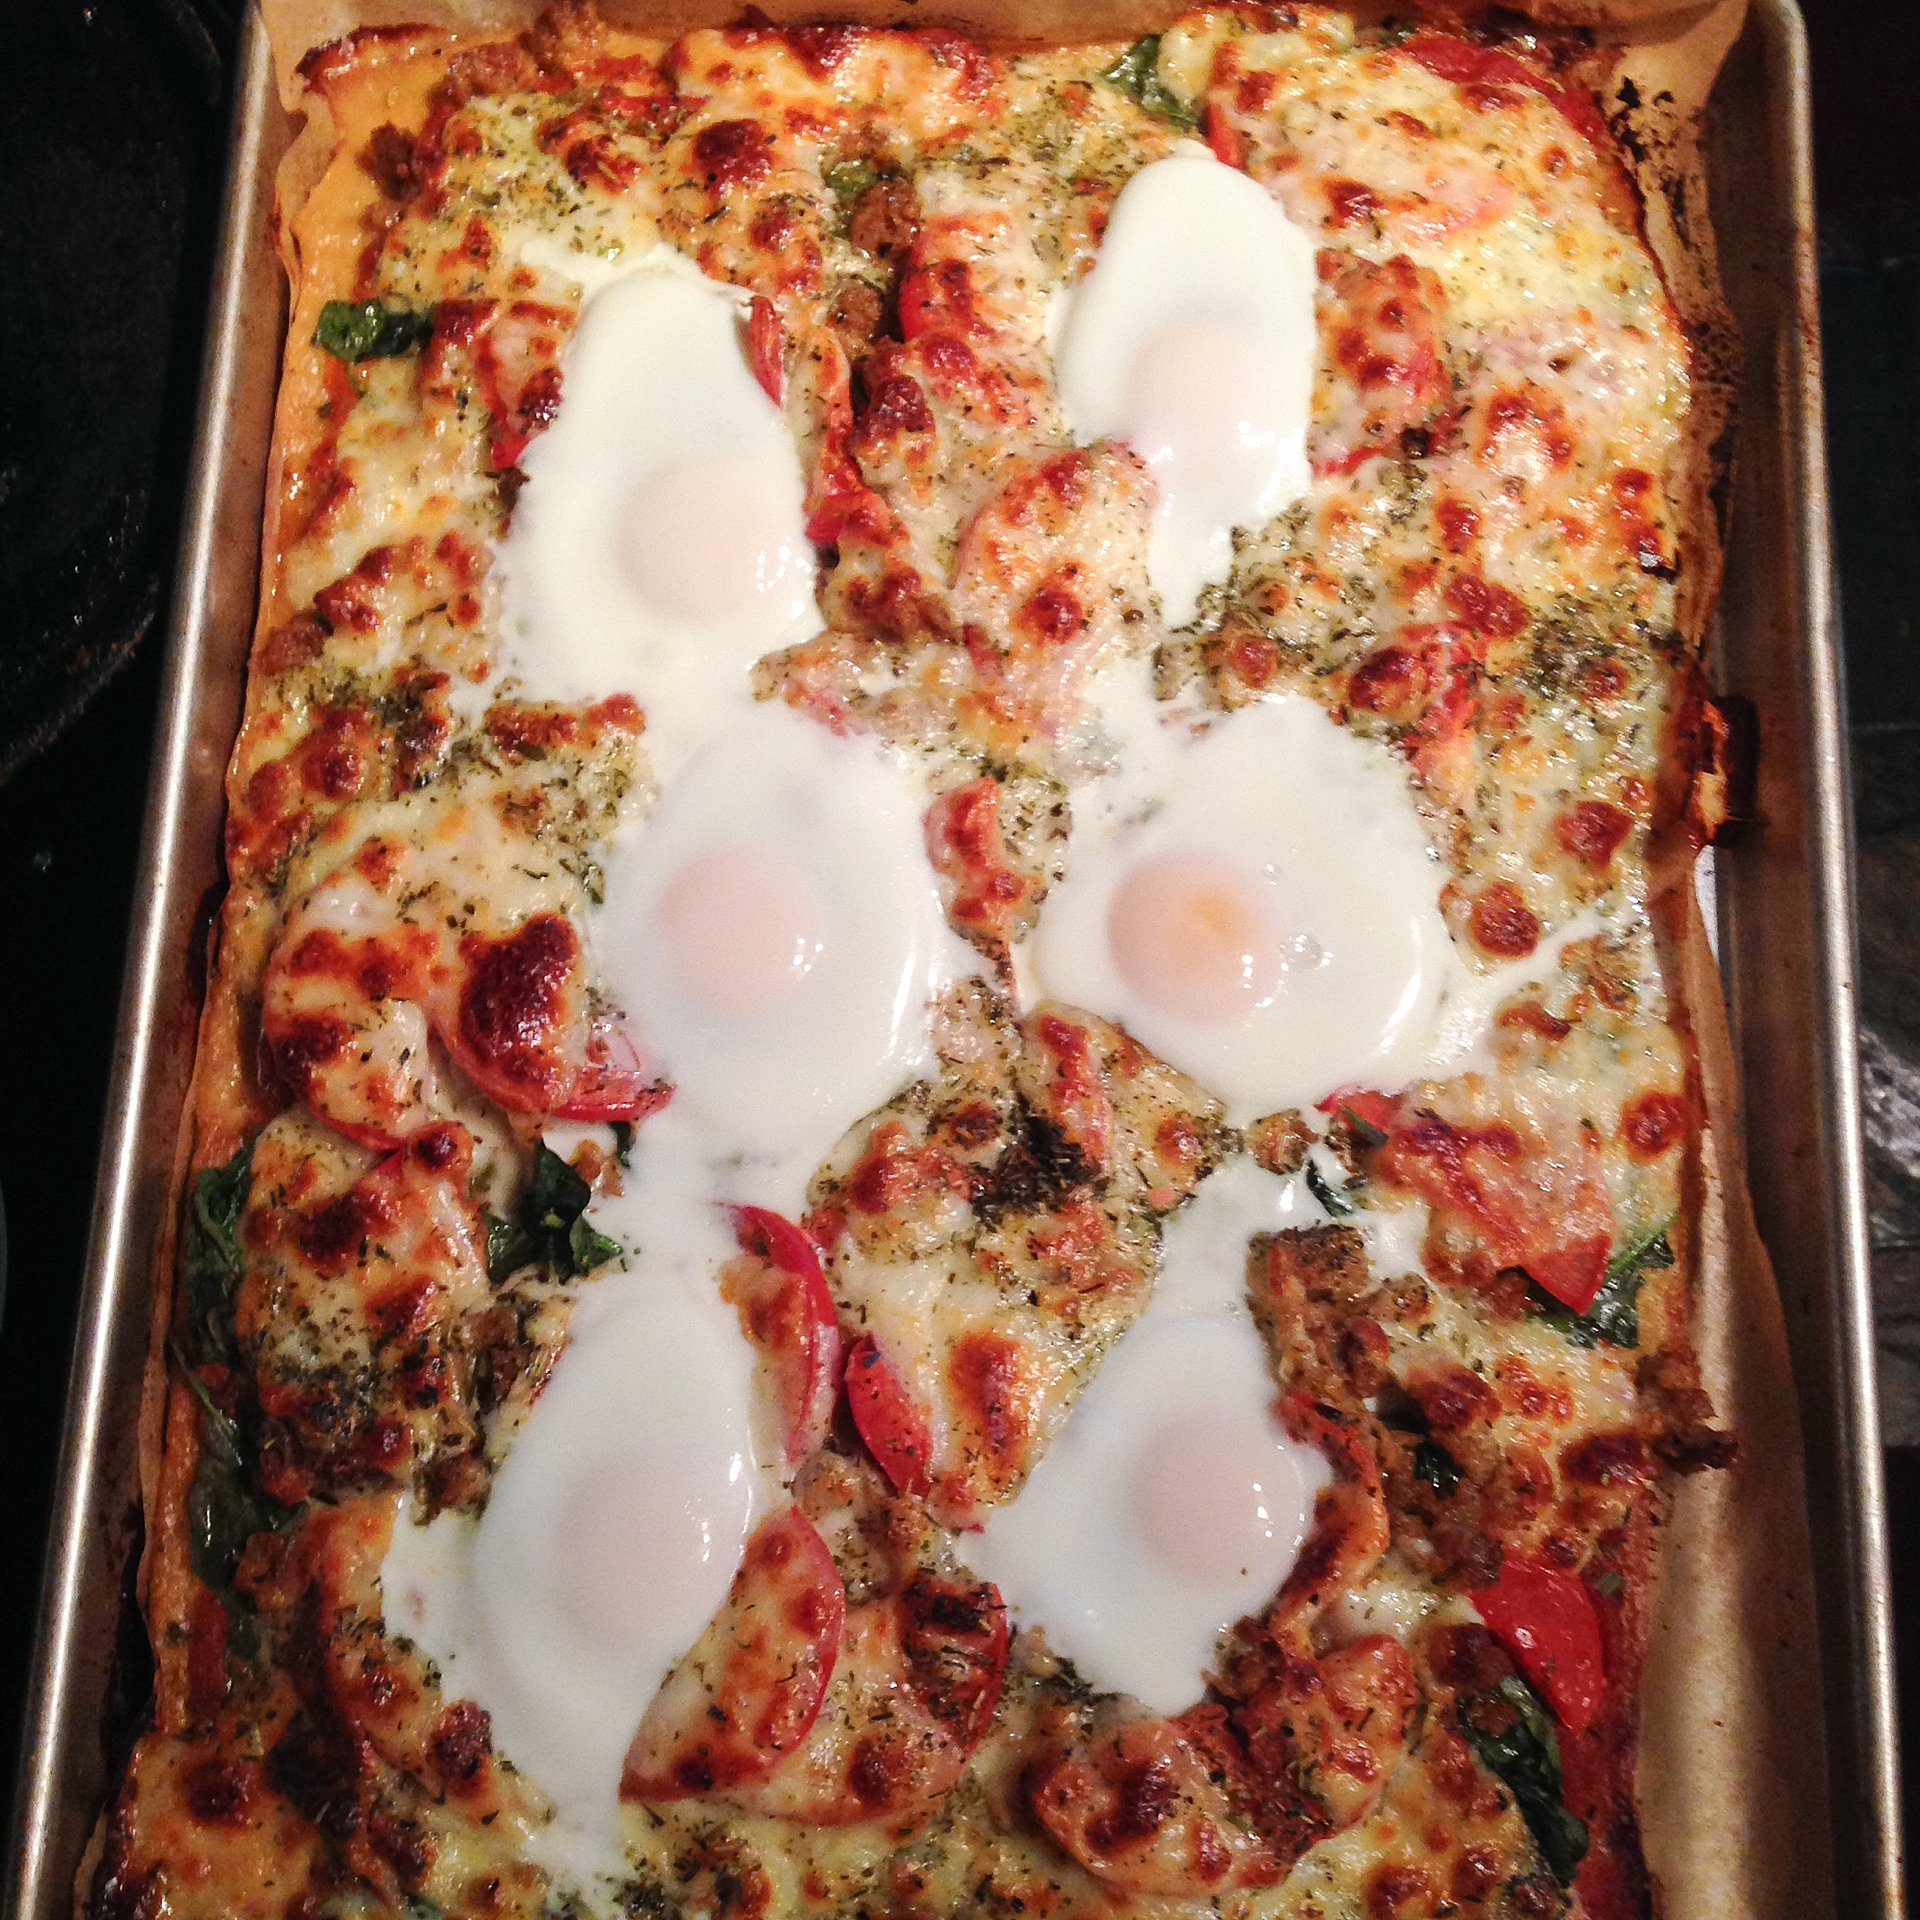 Chickpea-egg-pizza-chicken-sausage-eat-withthom